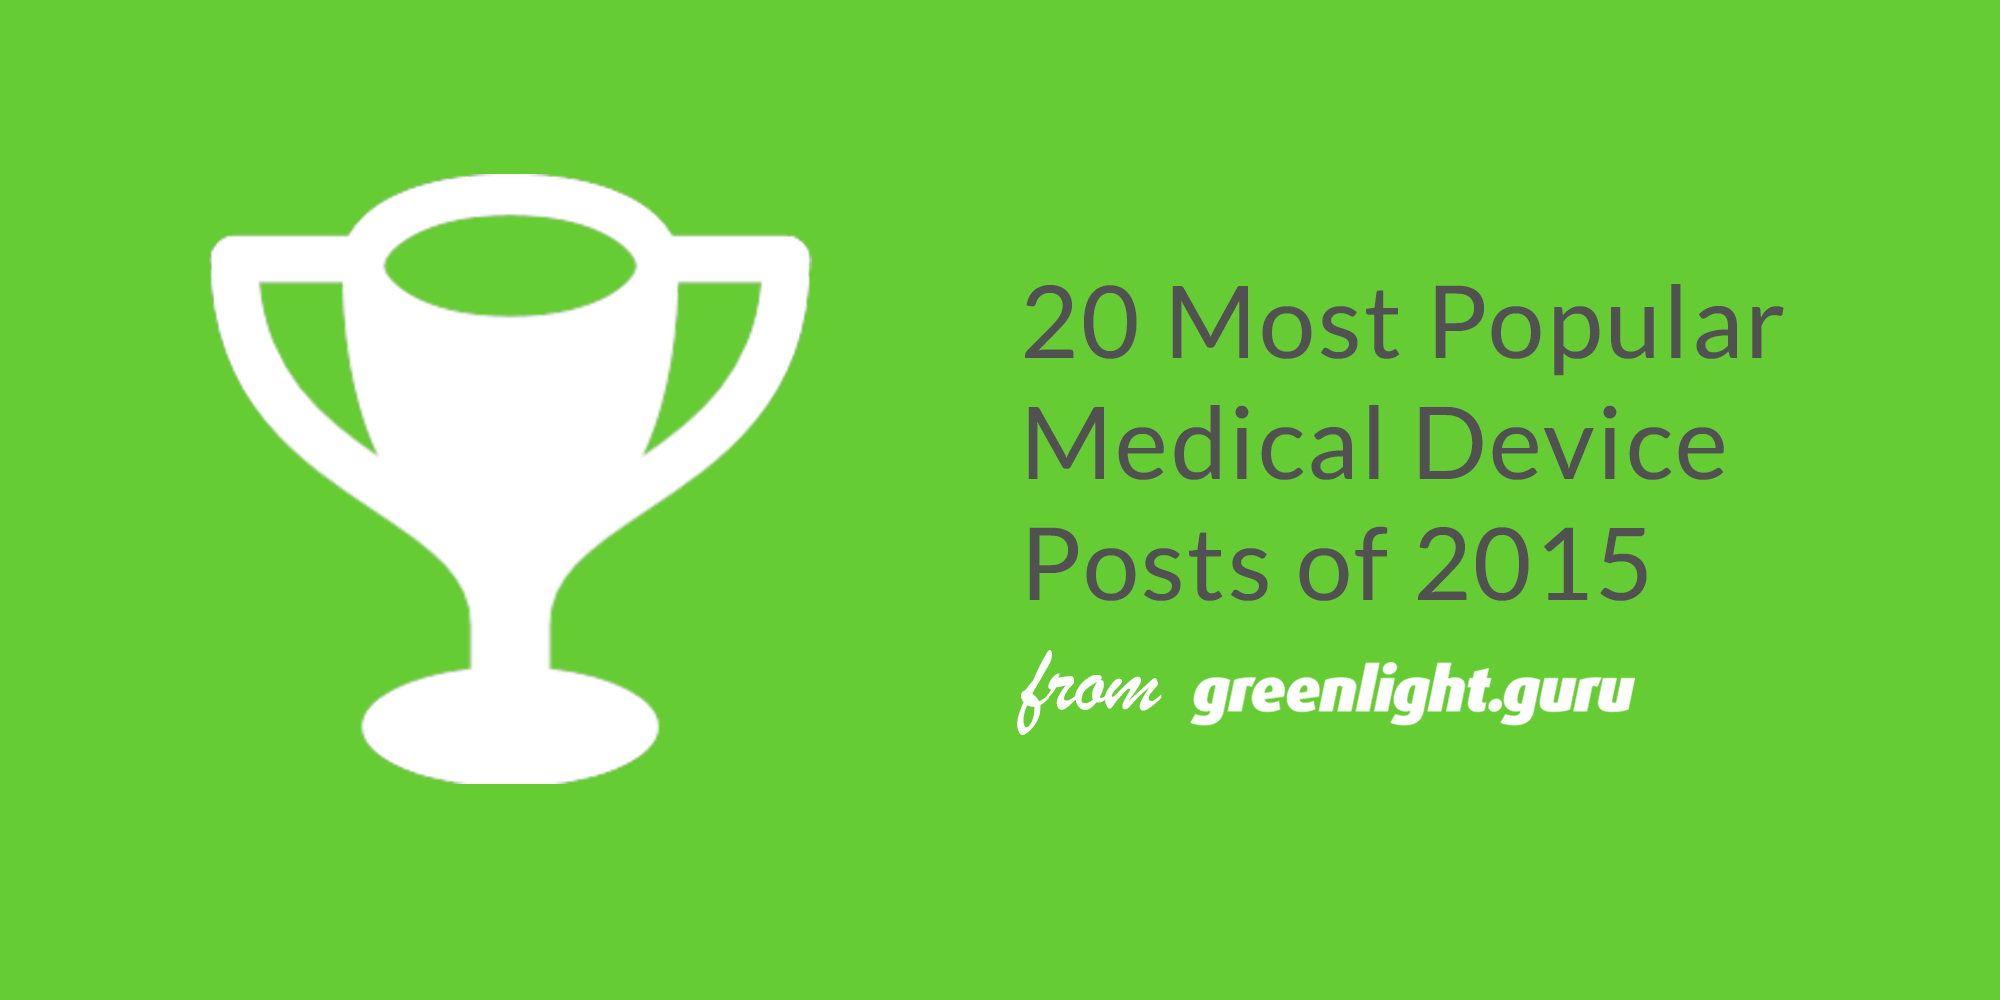 20 Most Popular Medical Device Posts of 2015 from greenlight.guru - Featured Image